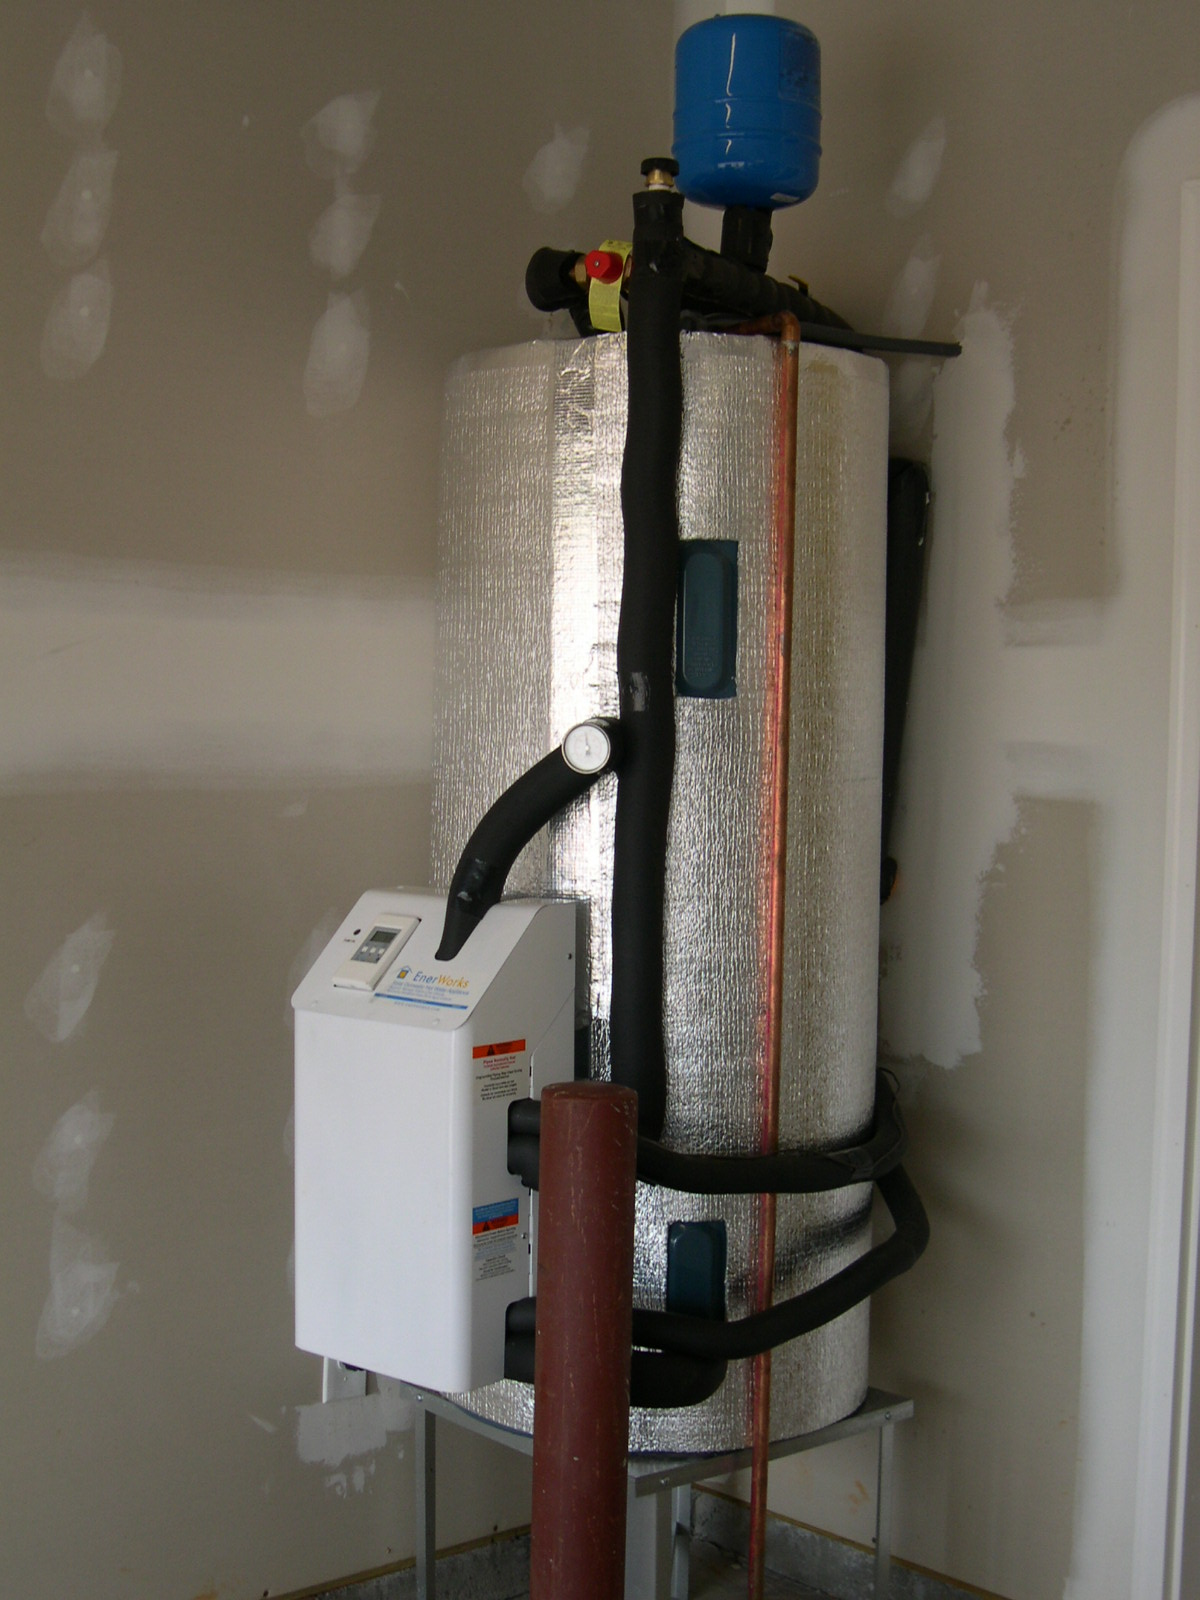 Water Tank Plumbing : Plumbing problems hot water heater